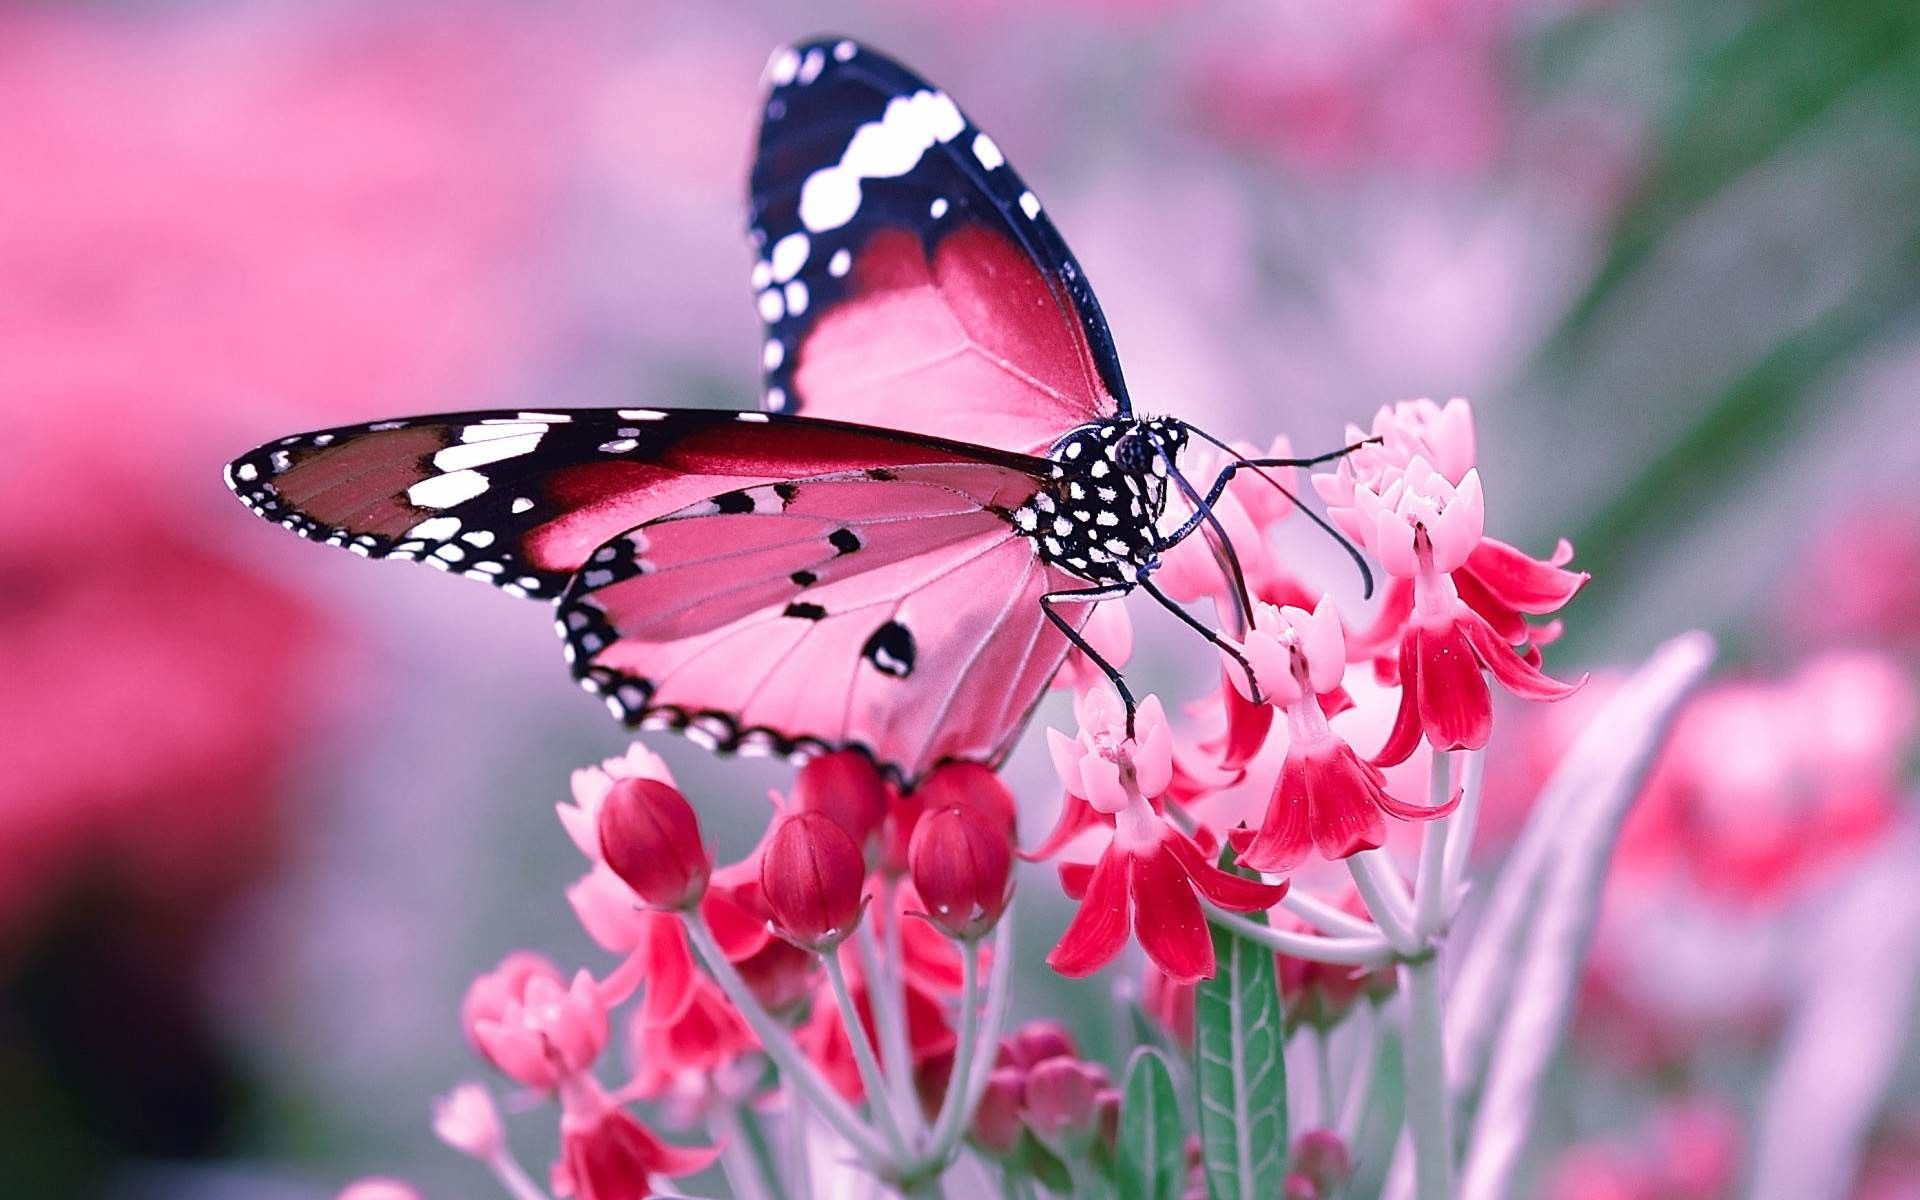 Full Hd Butterfly Wallpapers Top Free Full Hd Butterfly Backgrounds Wallpaperaccess